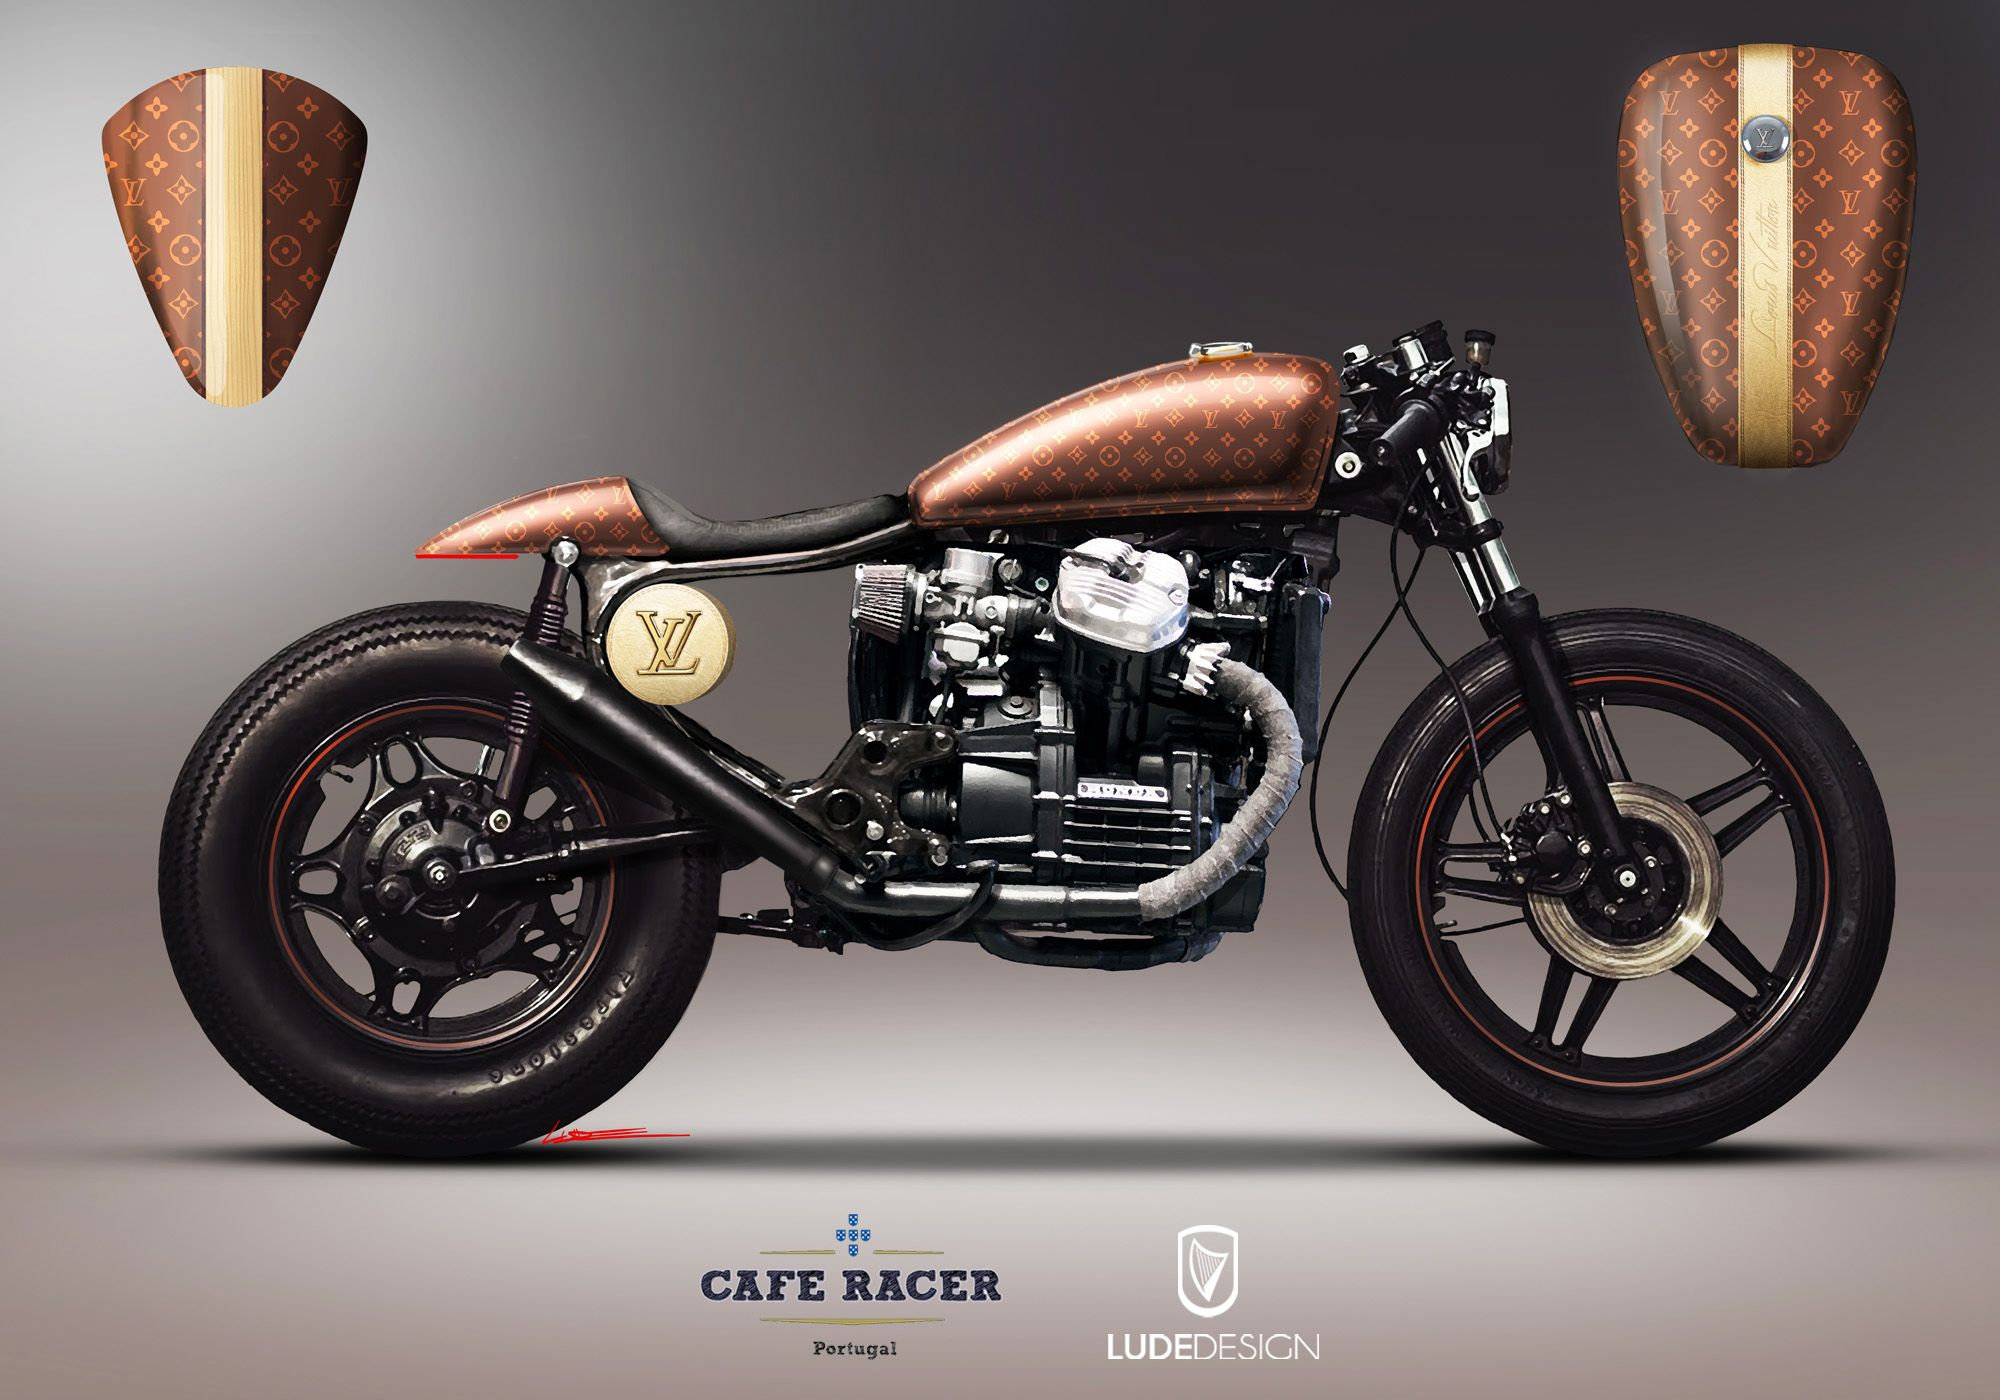 honda cx500 louis vuitton by andr costa ludedesign by cafe racer portugal vers o 2 andr. Black Bedroom Furniture Sets. Home Design Ideas